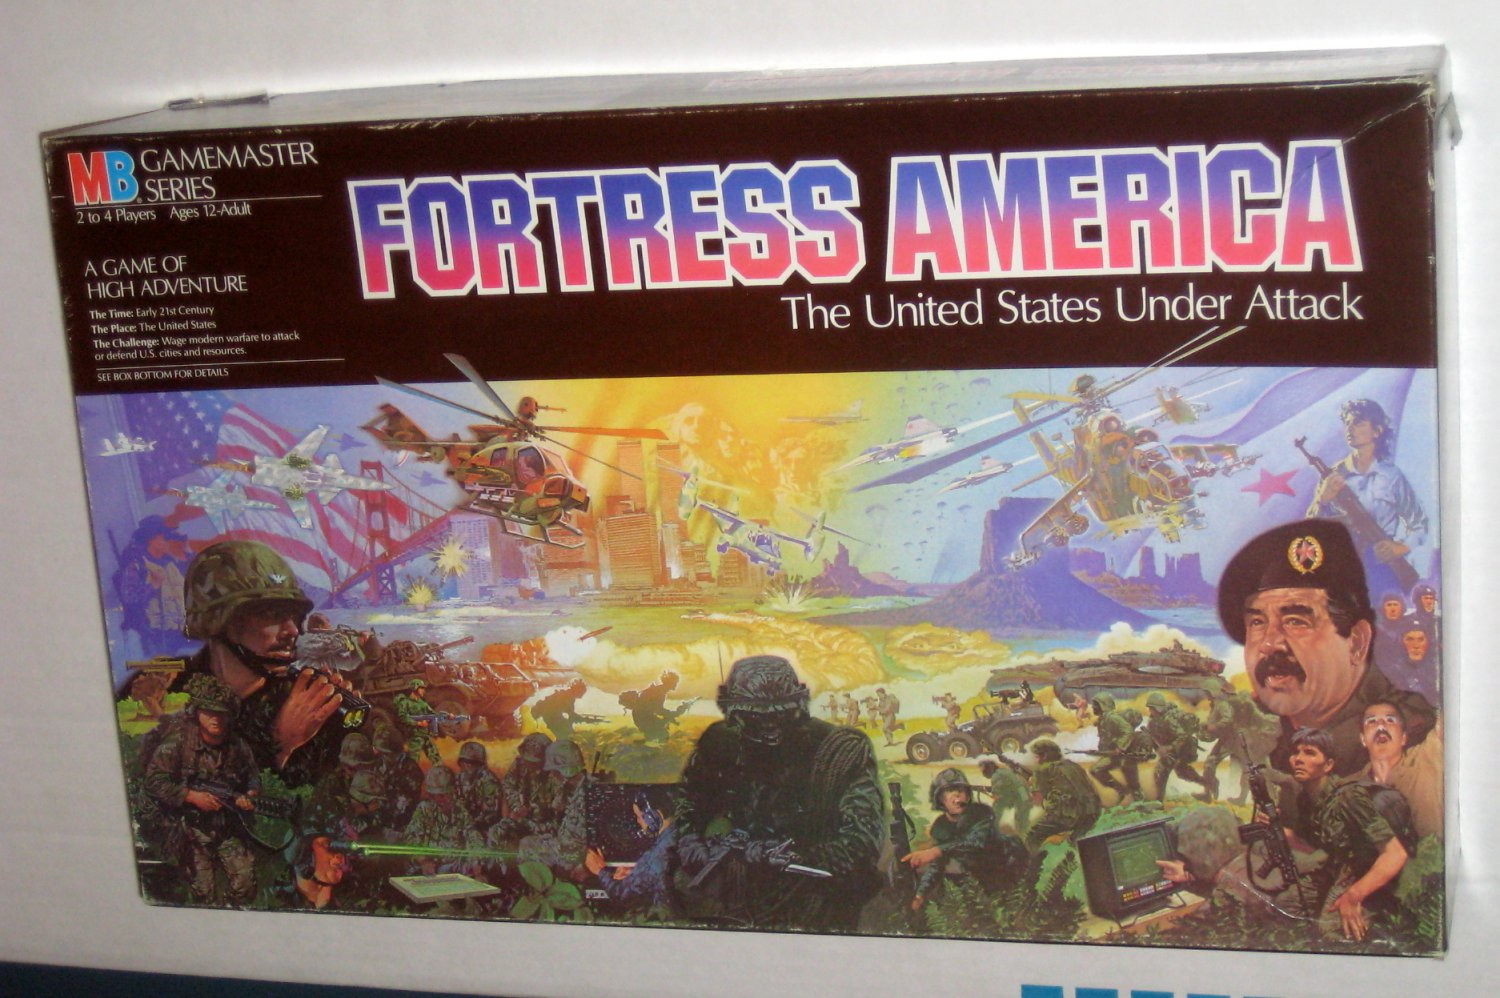 SOLD OUT Fortress America Board Game Early 21st Century United States Under Attack Gamemaster 4624